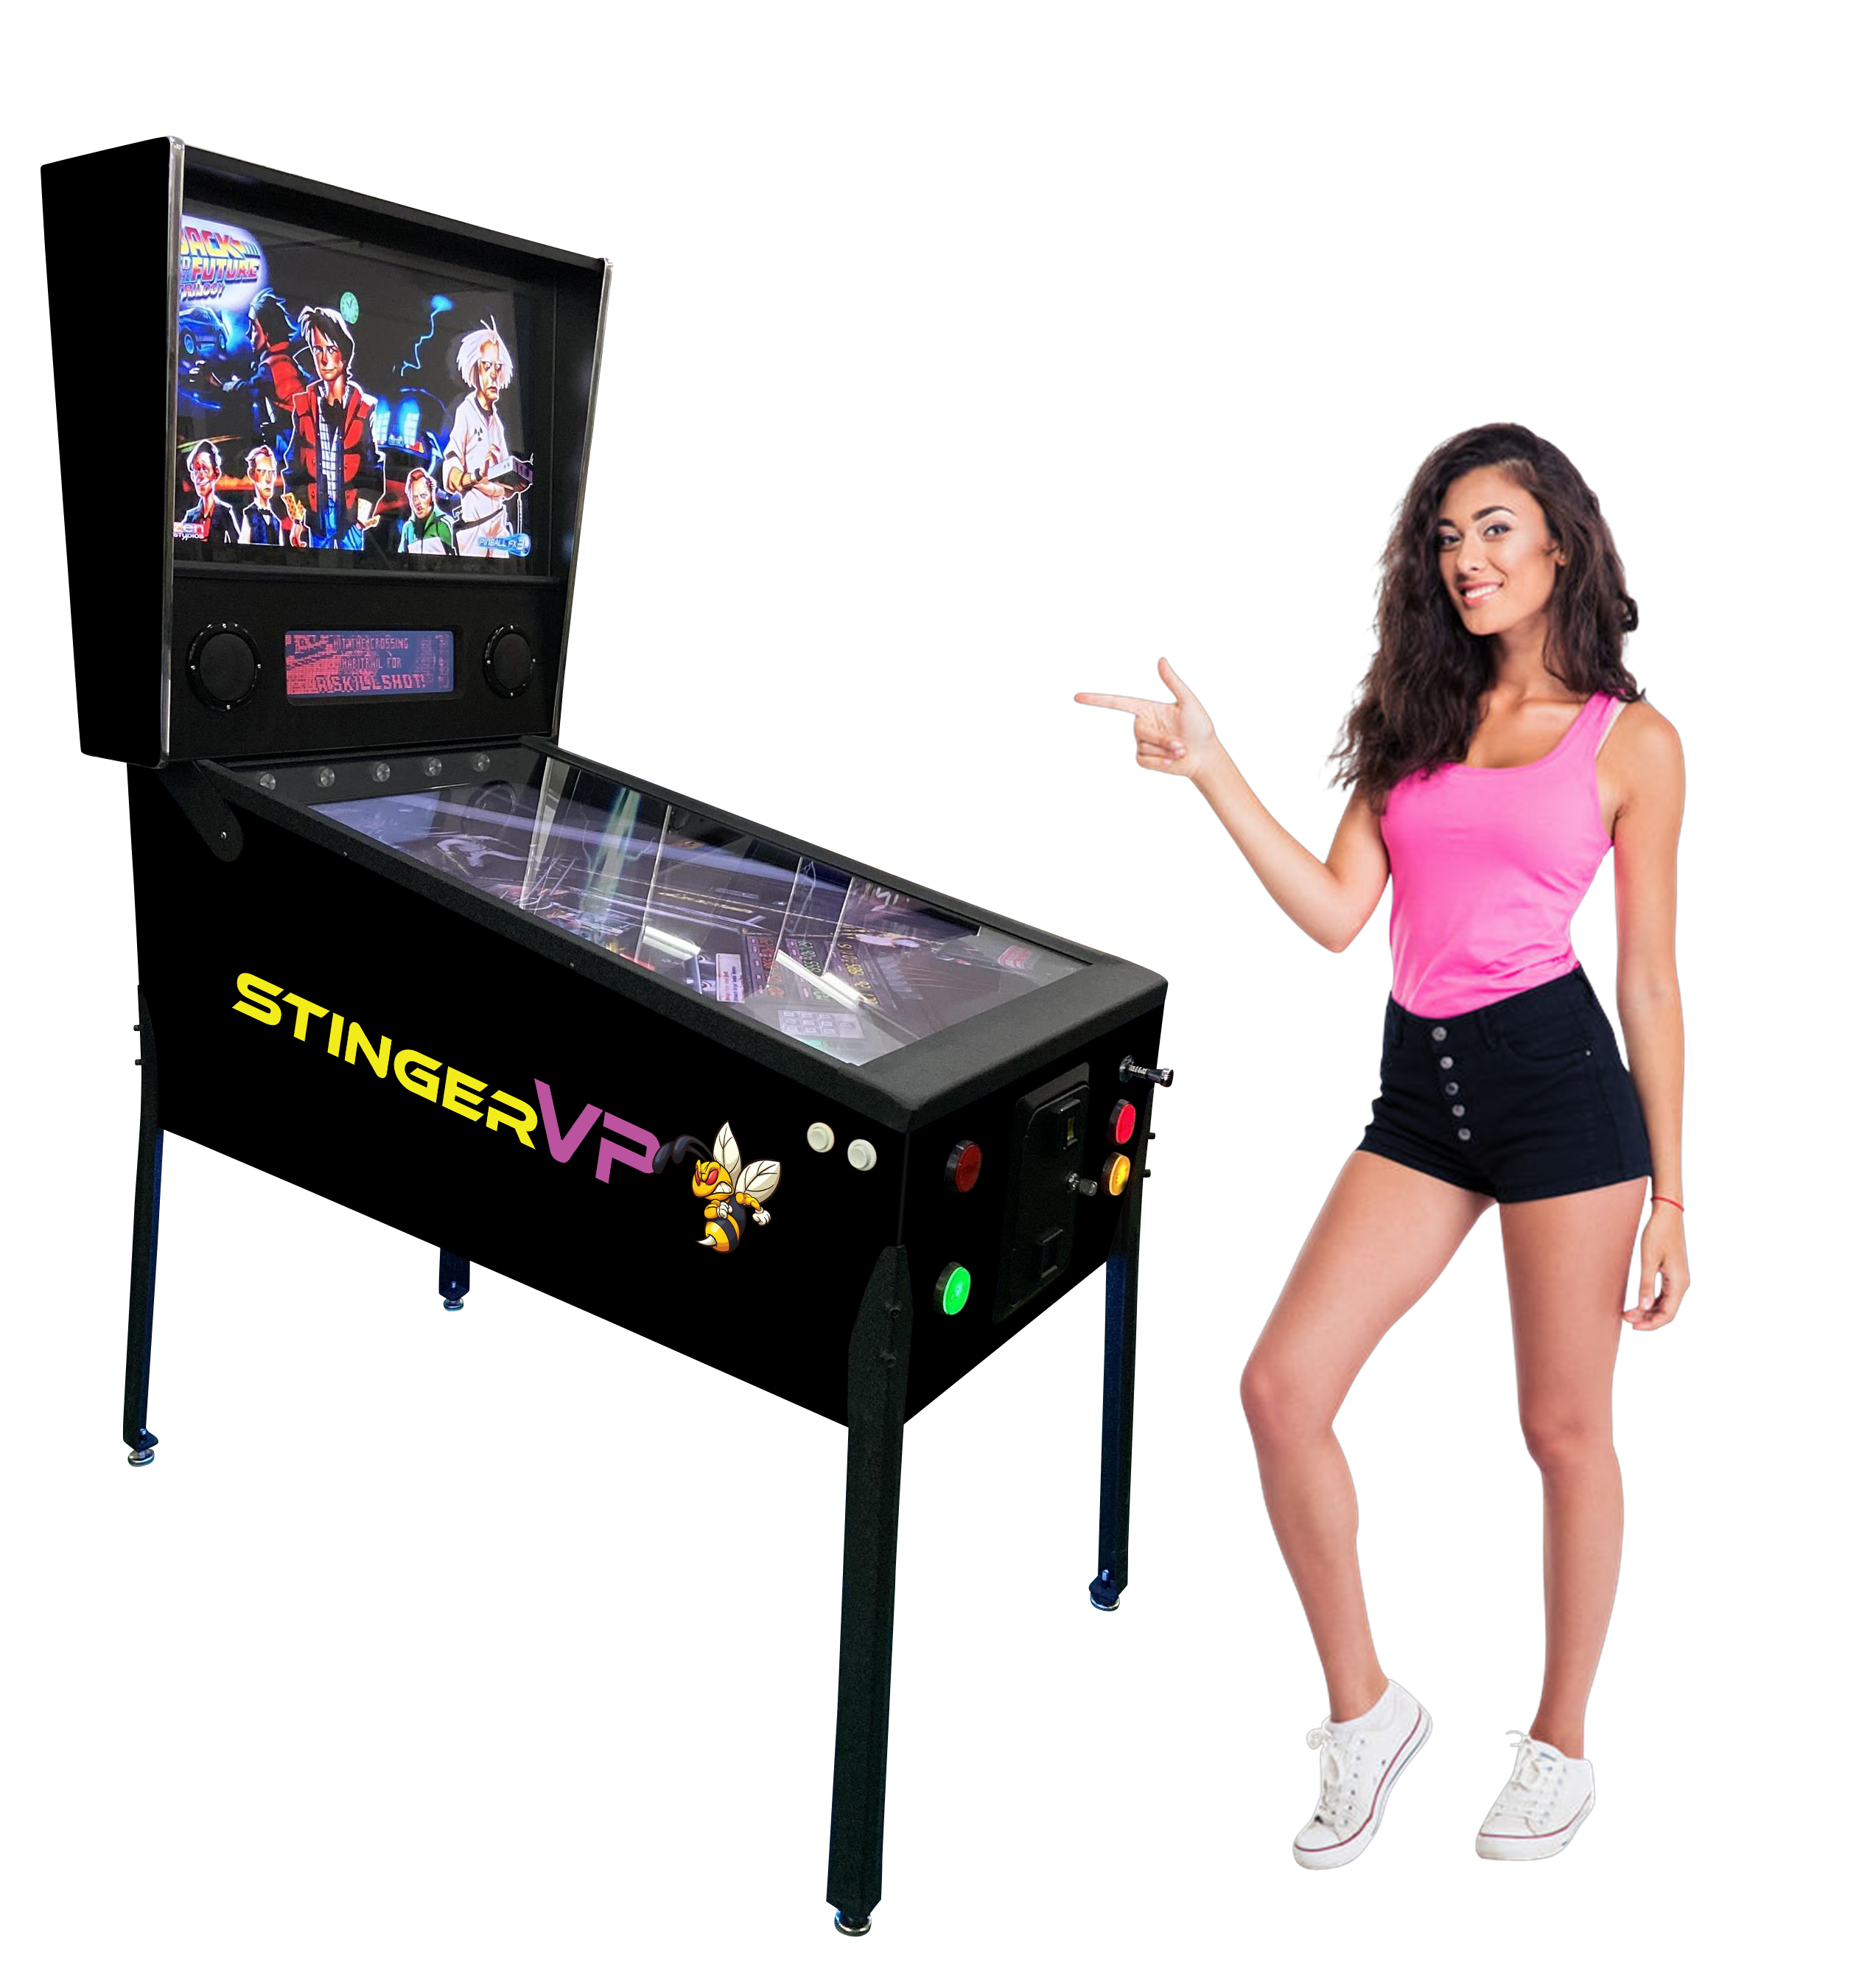 The New STINGER VP™ Virtual Pinball Machine for 2021! With Real Force feedback! (327 Famous Pinball Games)